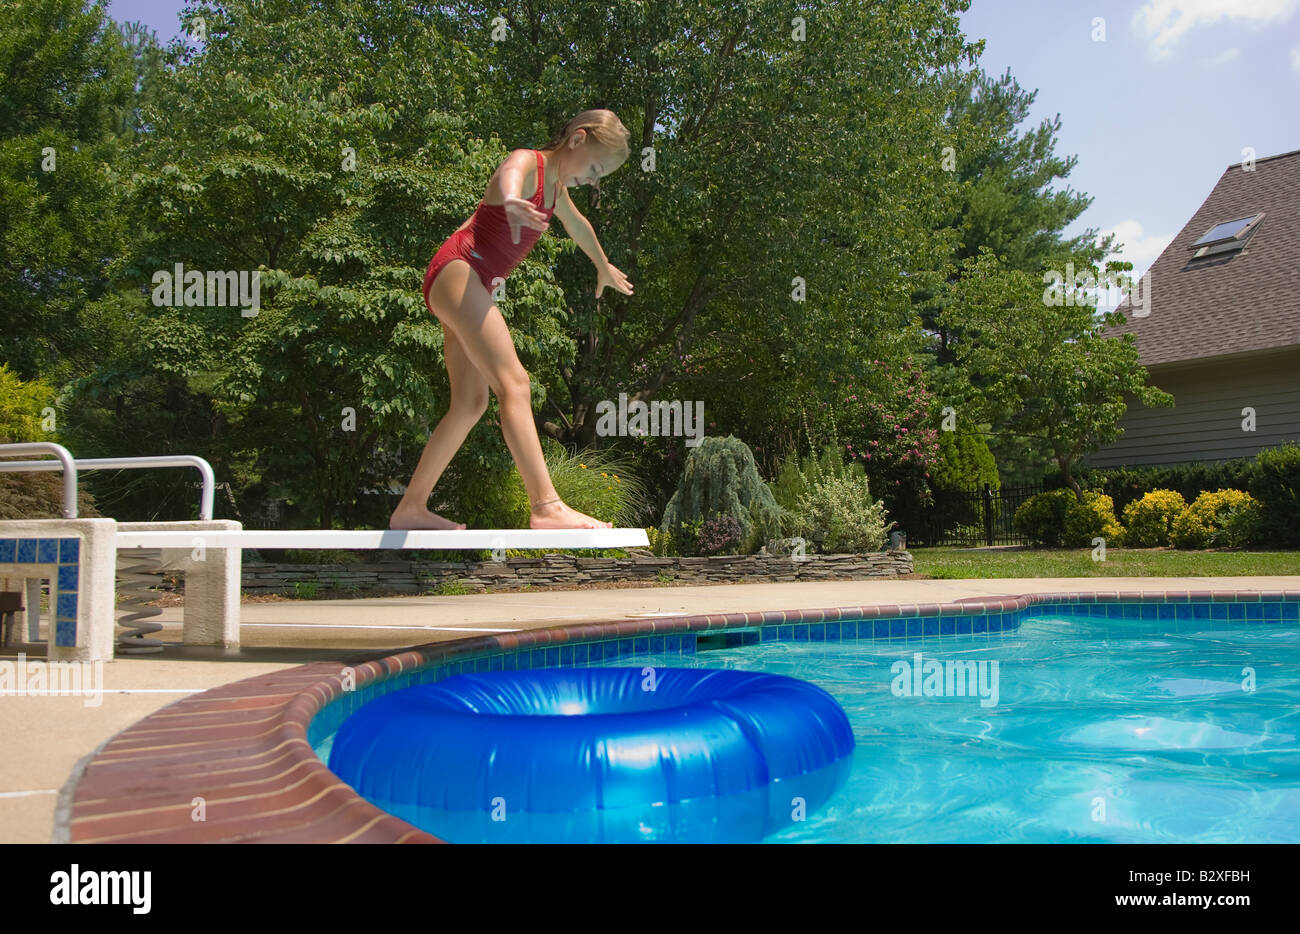 Exceptional Child Getting Ready To Dive Into A Swimming Pool